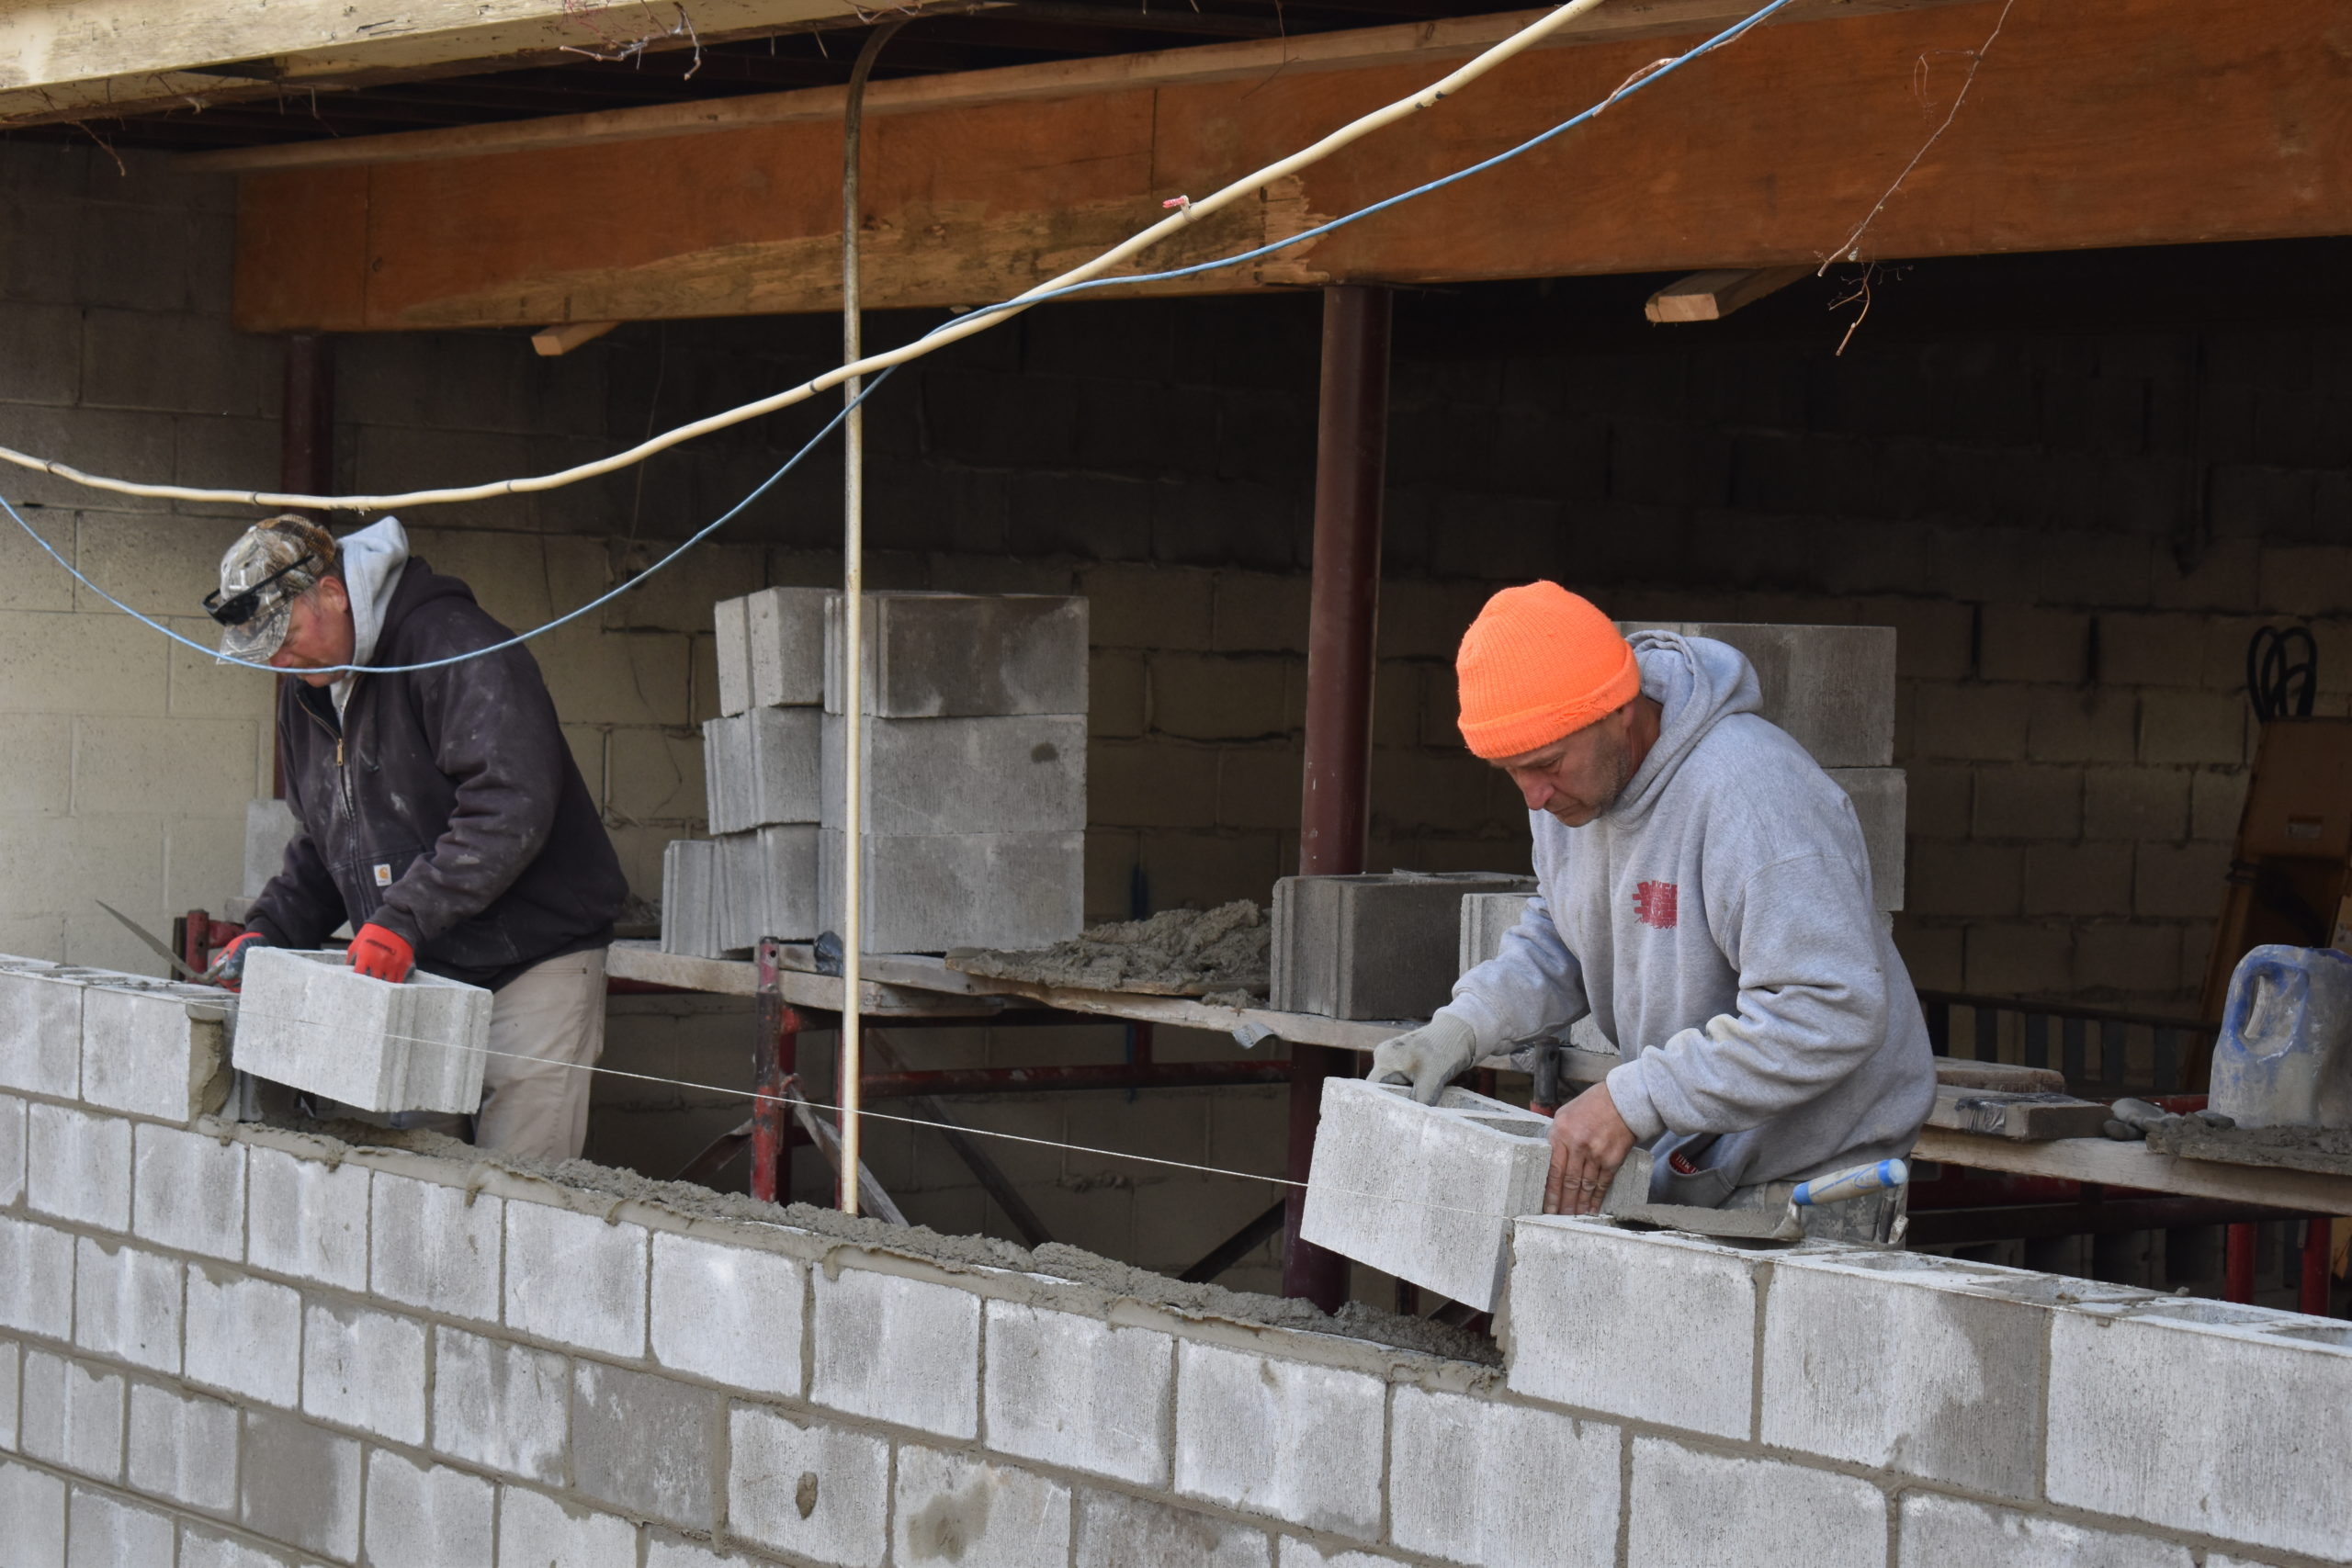 Mike Mayer, left, and Thomas Blazak of Bricklayers and Allied Craft Workers Local #8 of Youngstown rebuild the wall at the Brookfield Local School District bus garage on Grove Street.